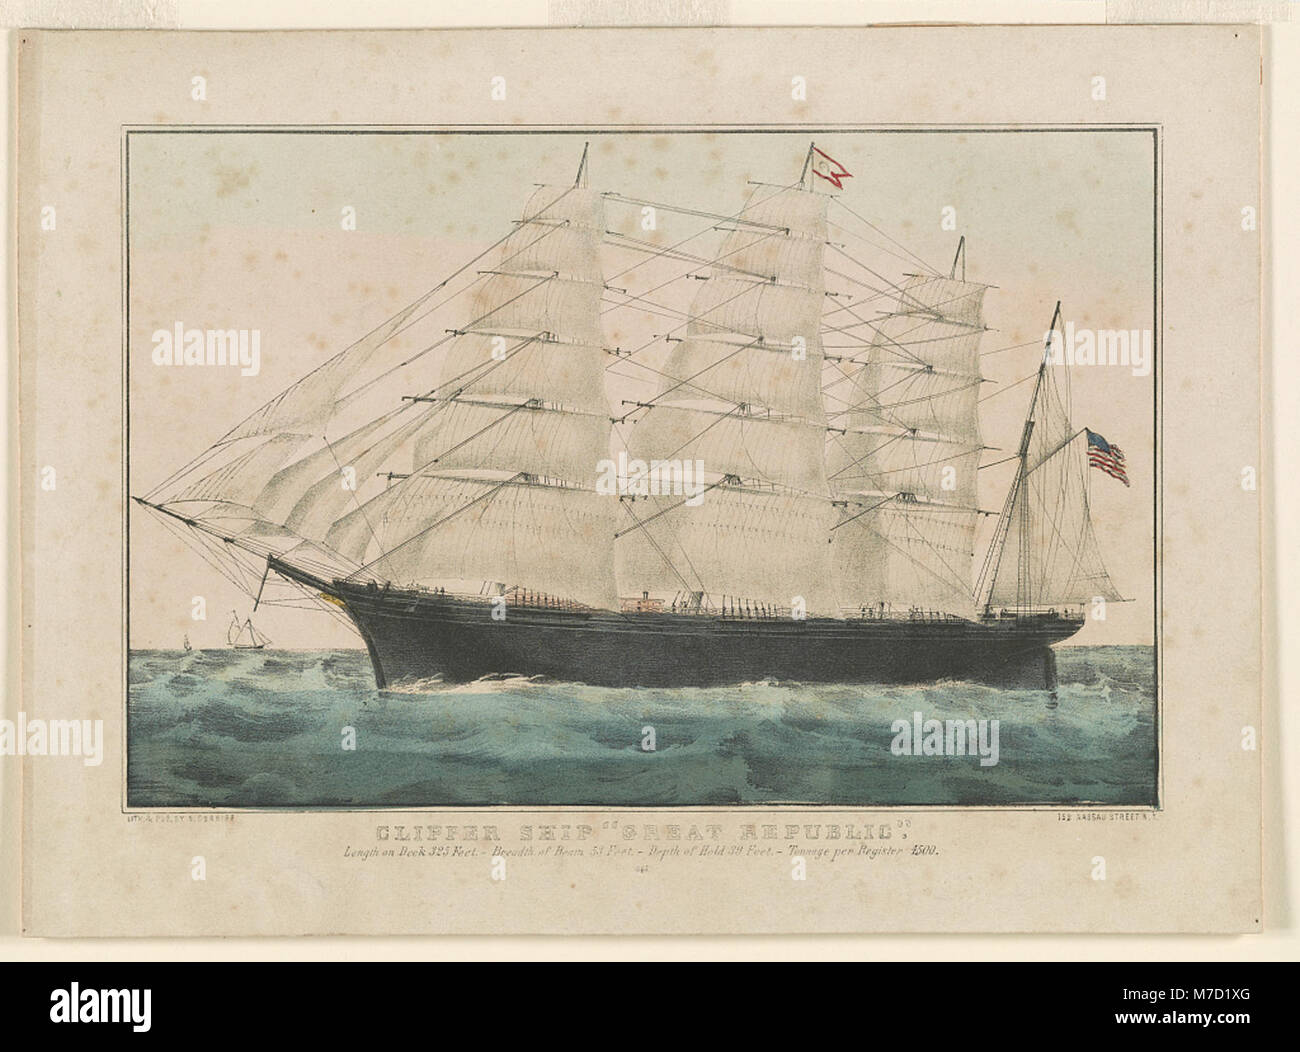 Clipper ship 'Great Republic'- Length on deck 325 feet.-Breadth of beam 53 feet.-Depth of hold 39 feet. - Stock Image